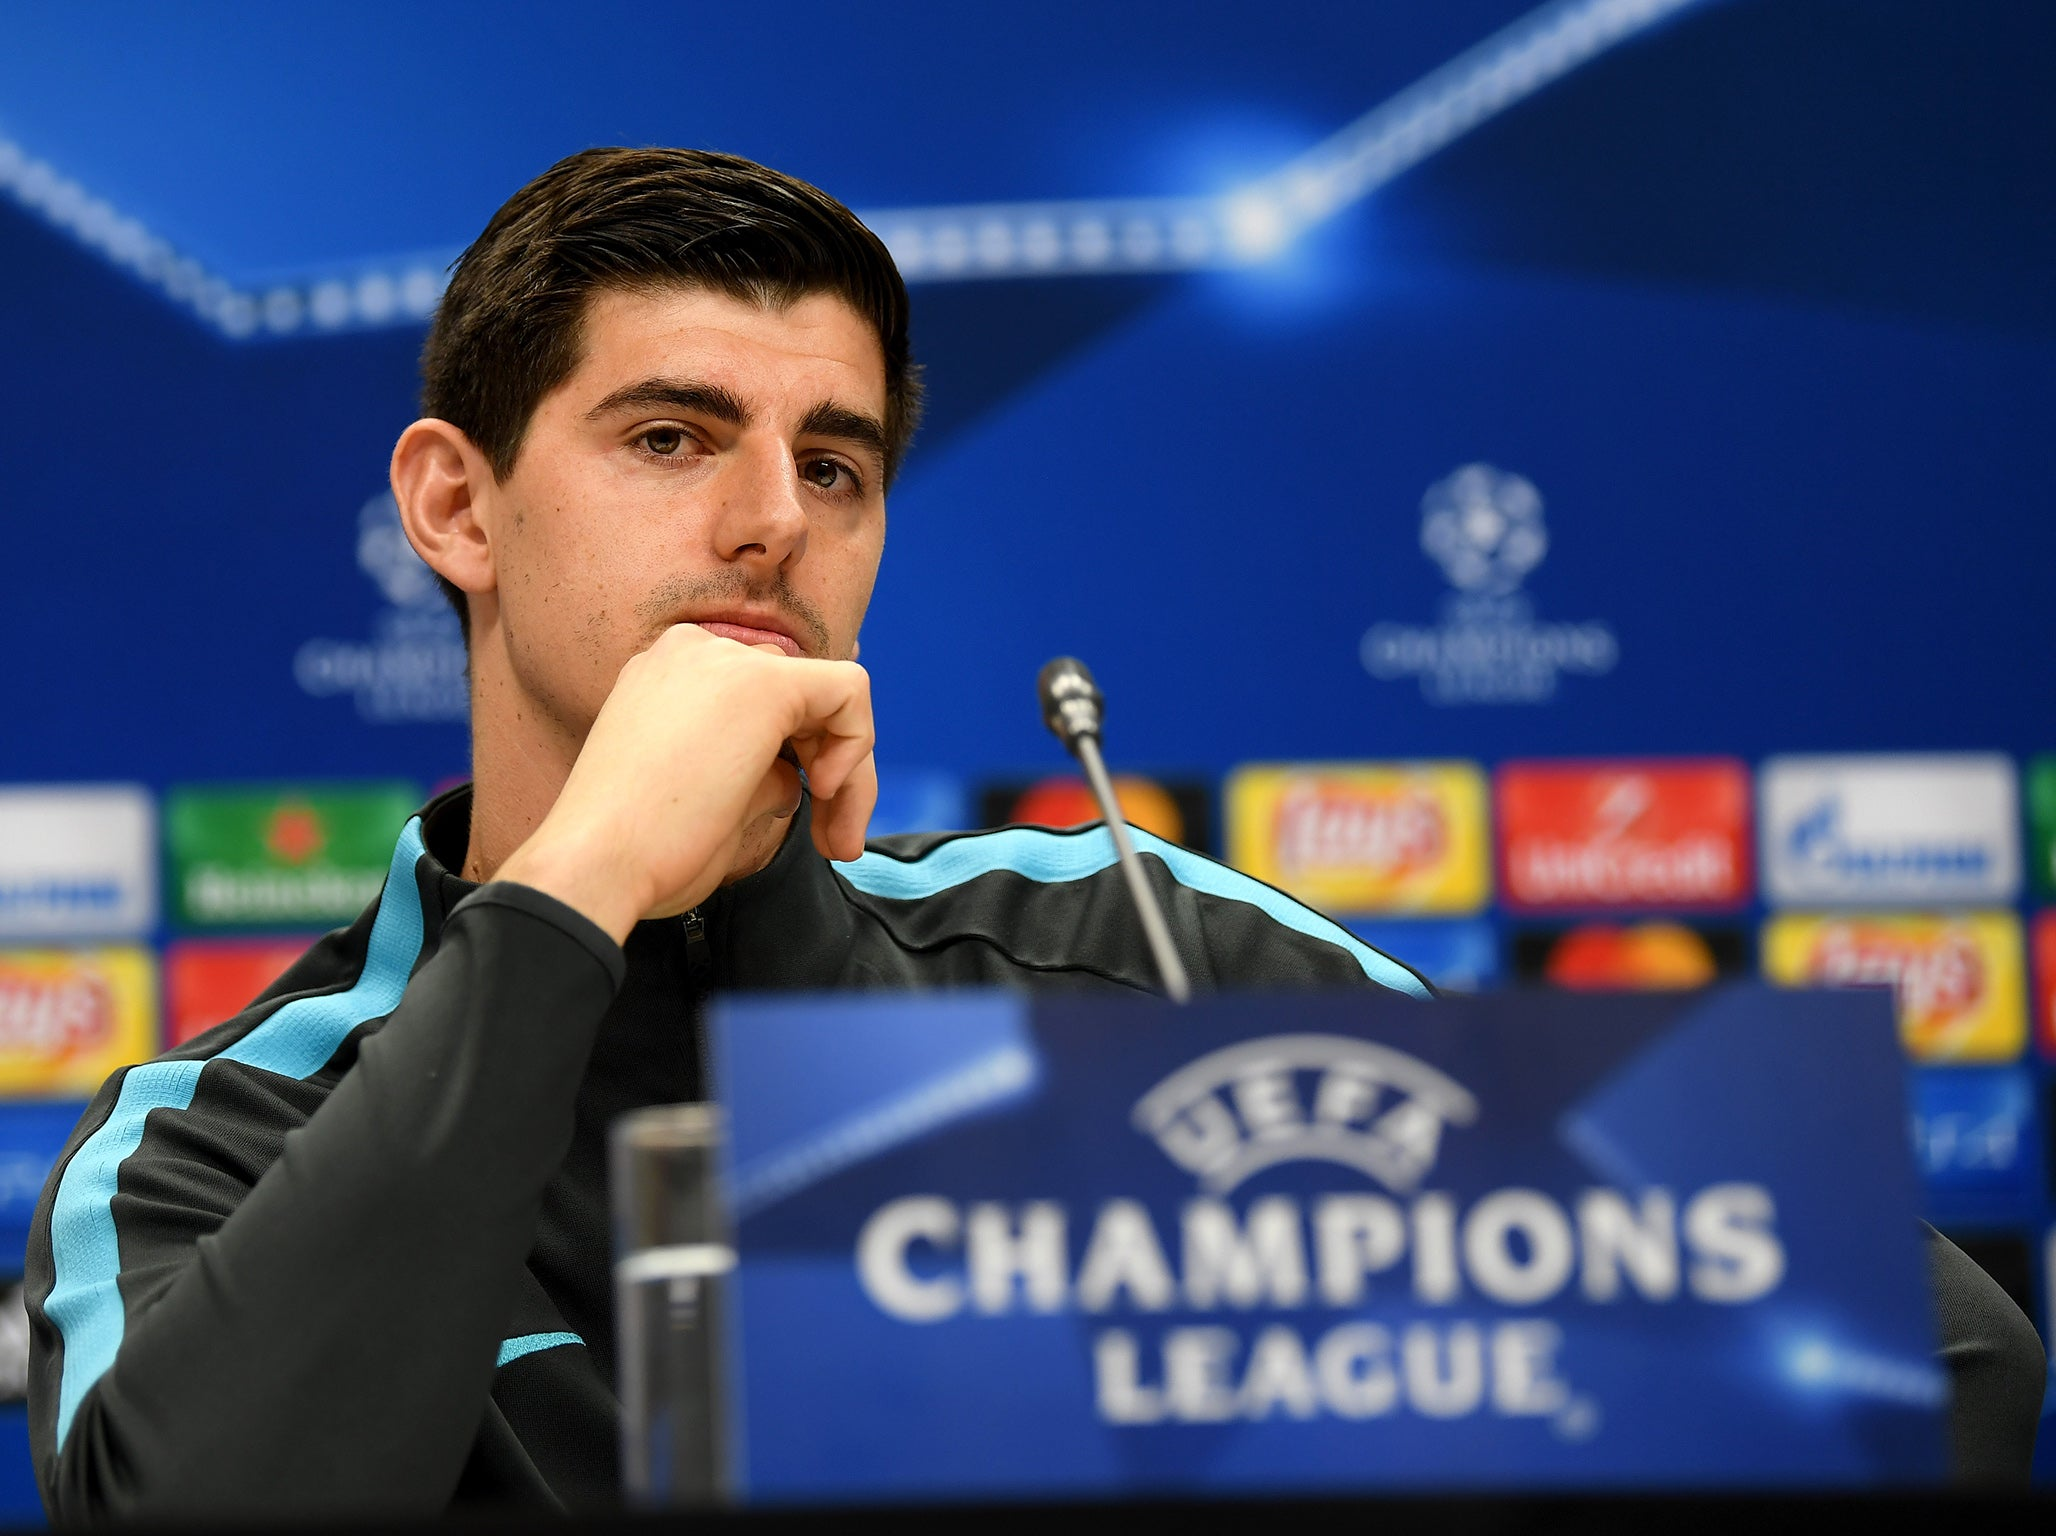 Thibaut Courtois no closer to signing new Chelsea contract: 'There have been no new developments'